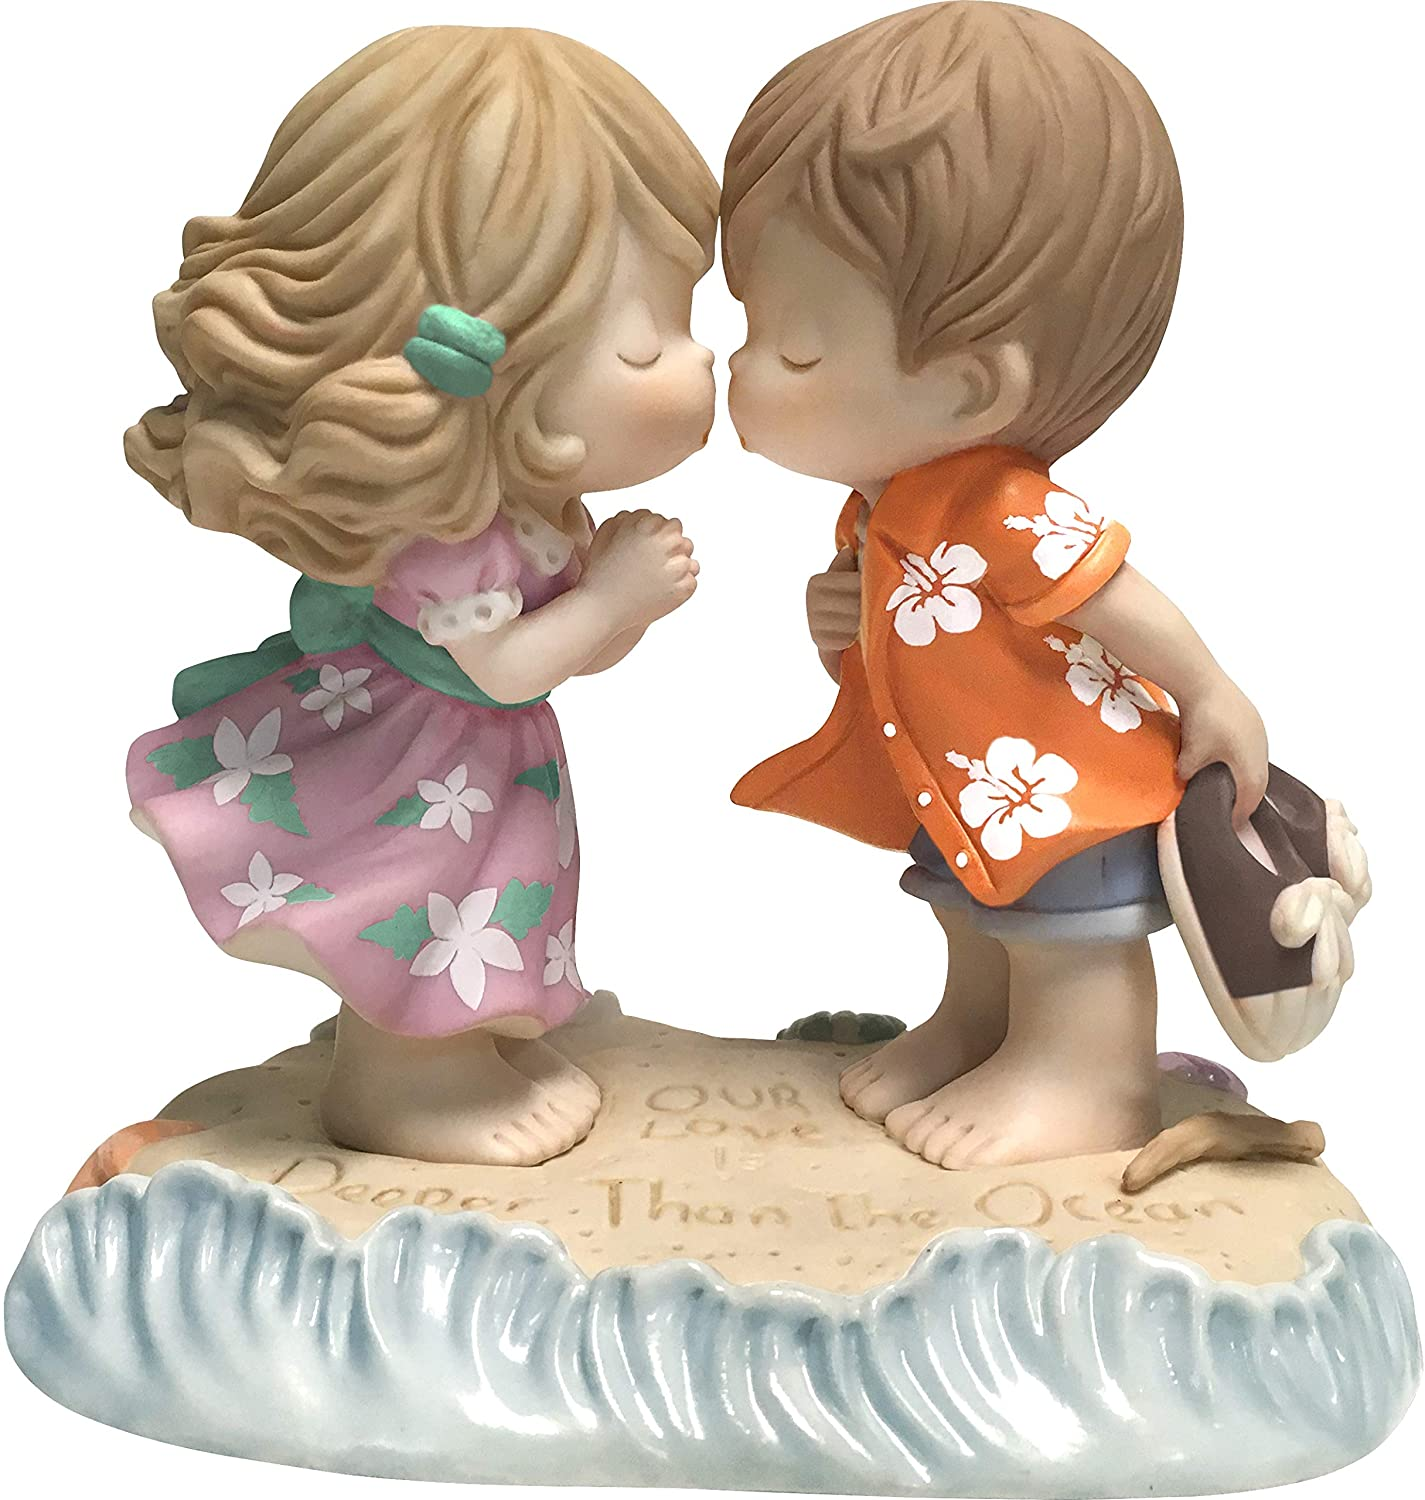 Precious Moments Love is Deeper Max 74% OFF Bisque Max 88% OFF Ocean The Than Porcelain